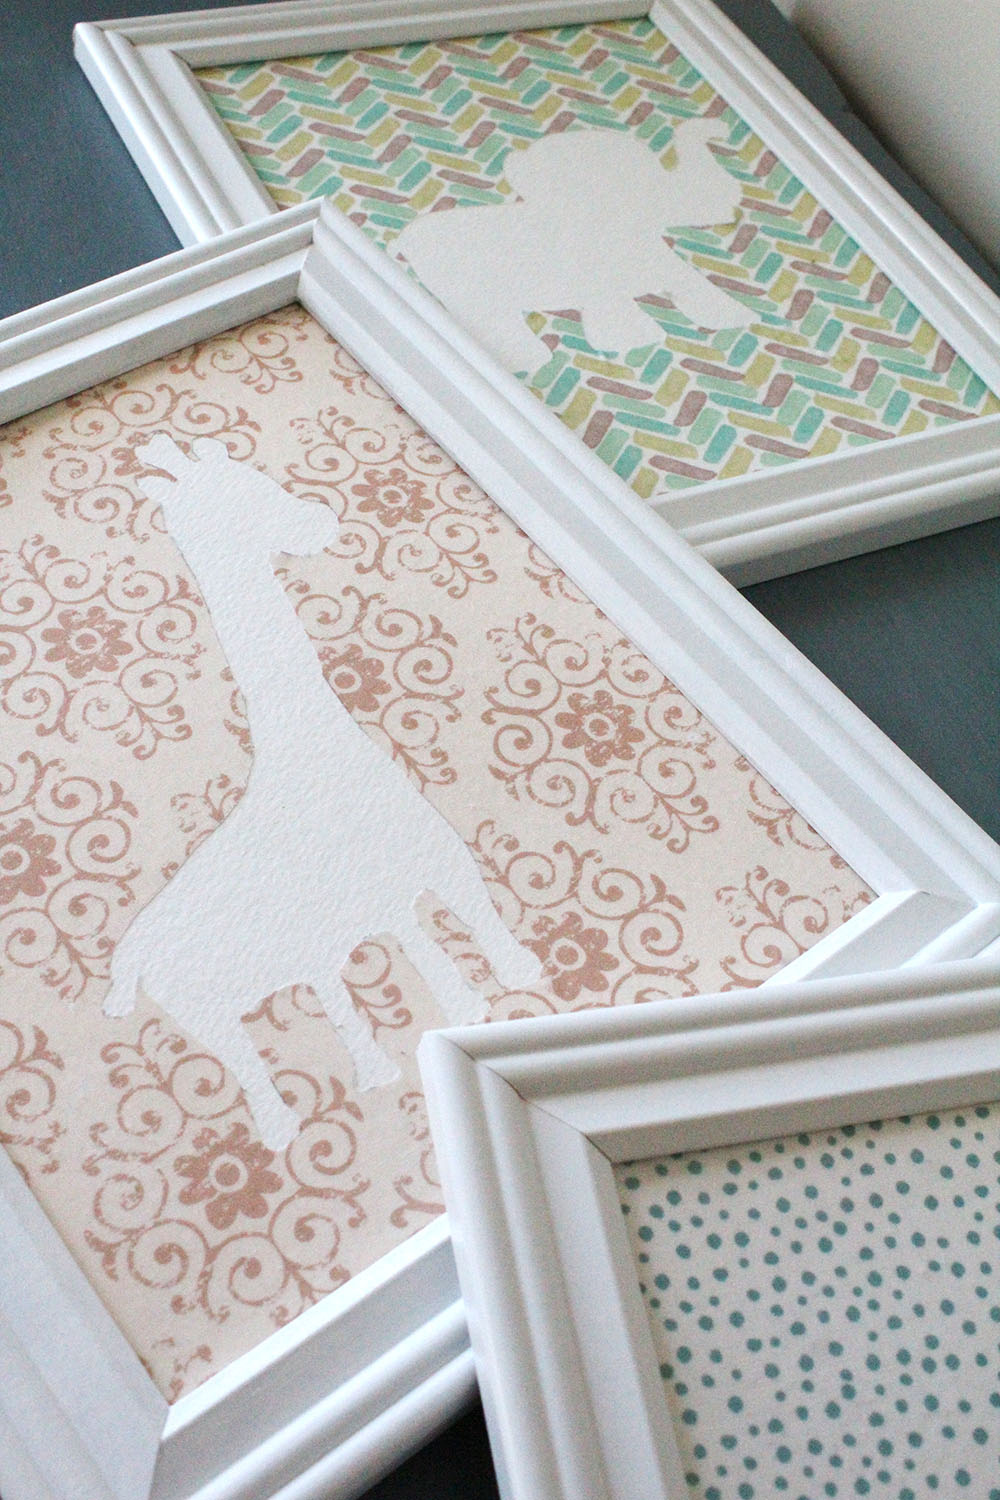 DIY nursery wall art with white picture frames, textured fabric paper, and baby animals